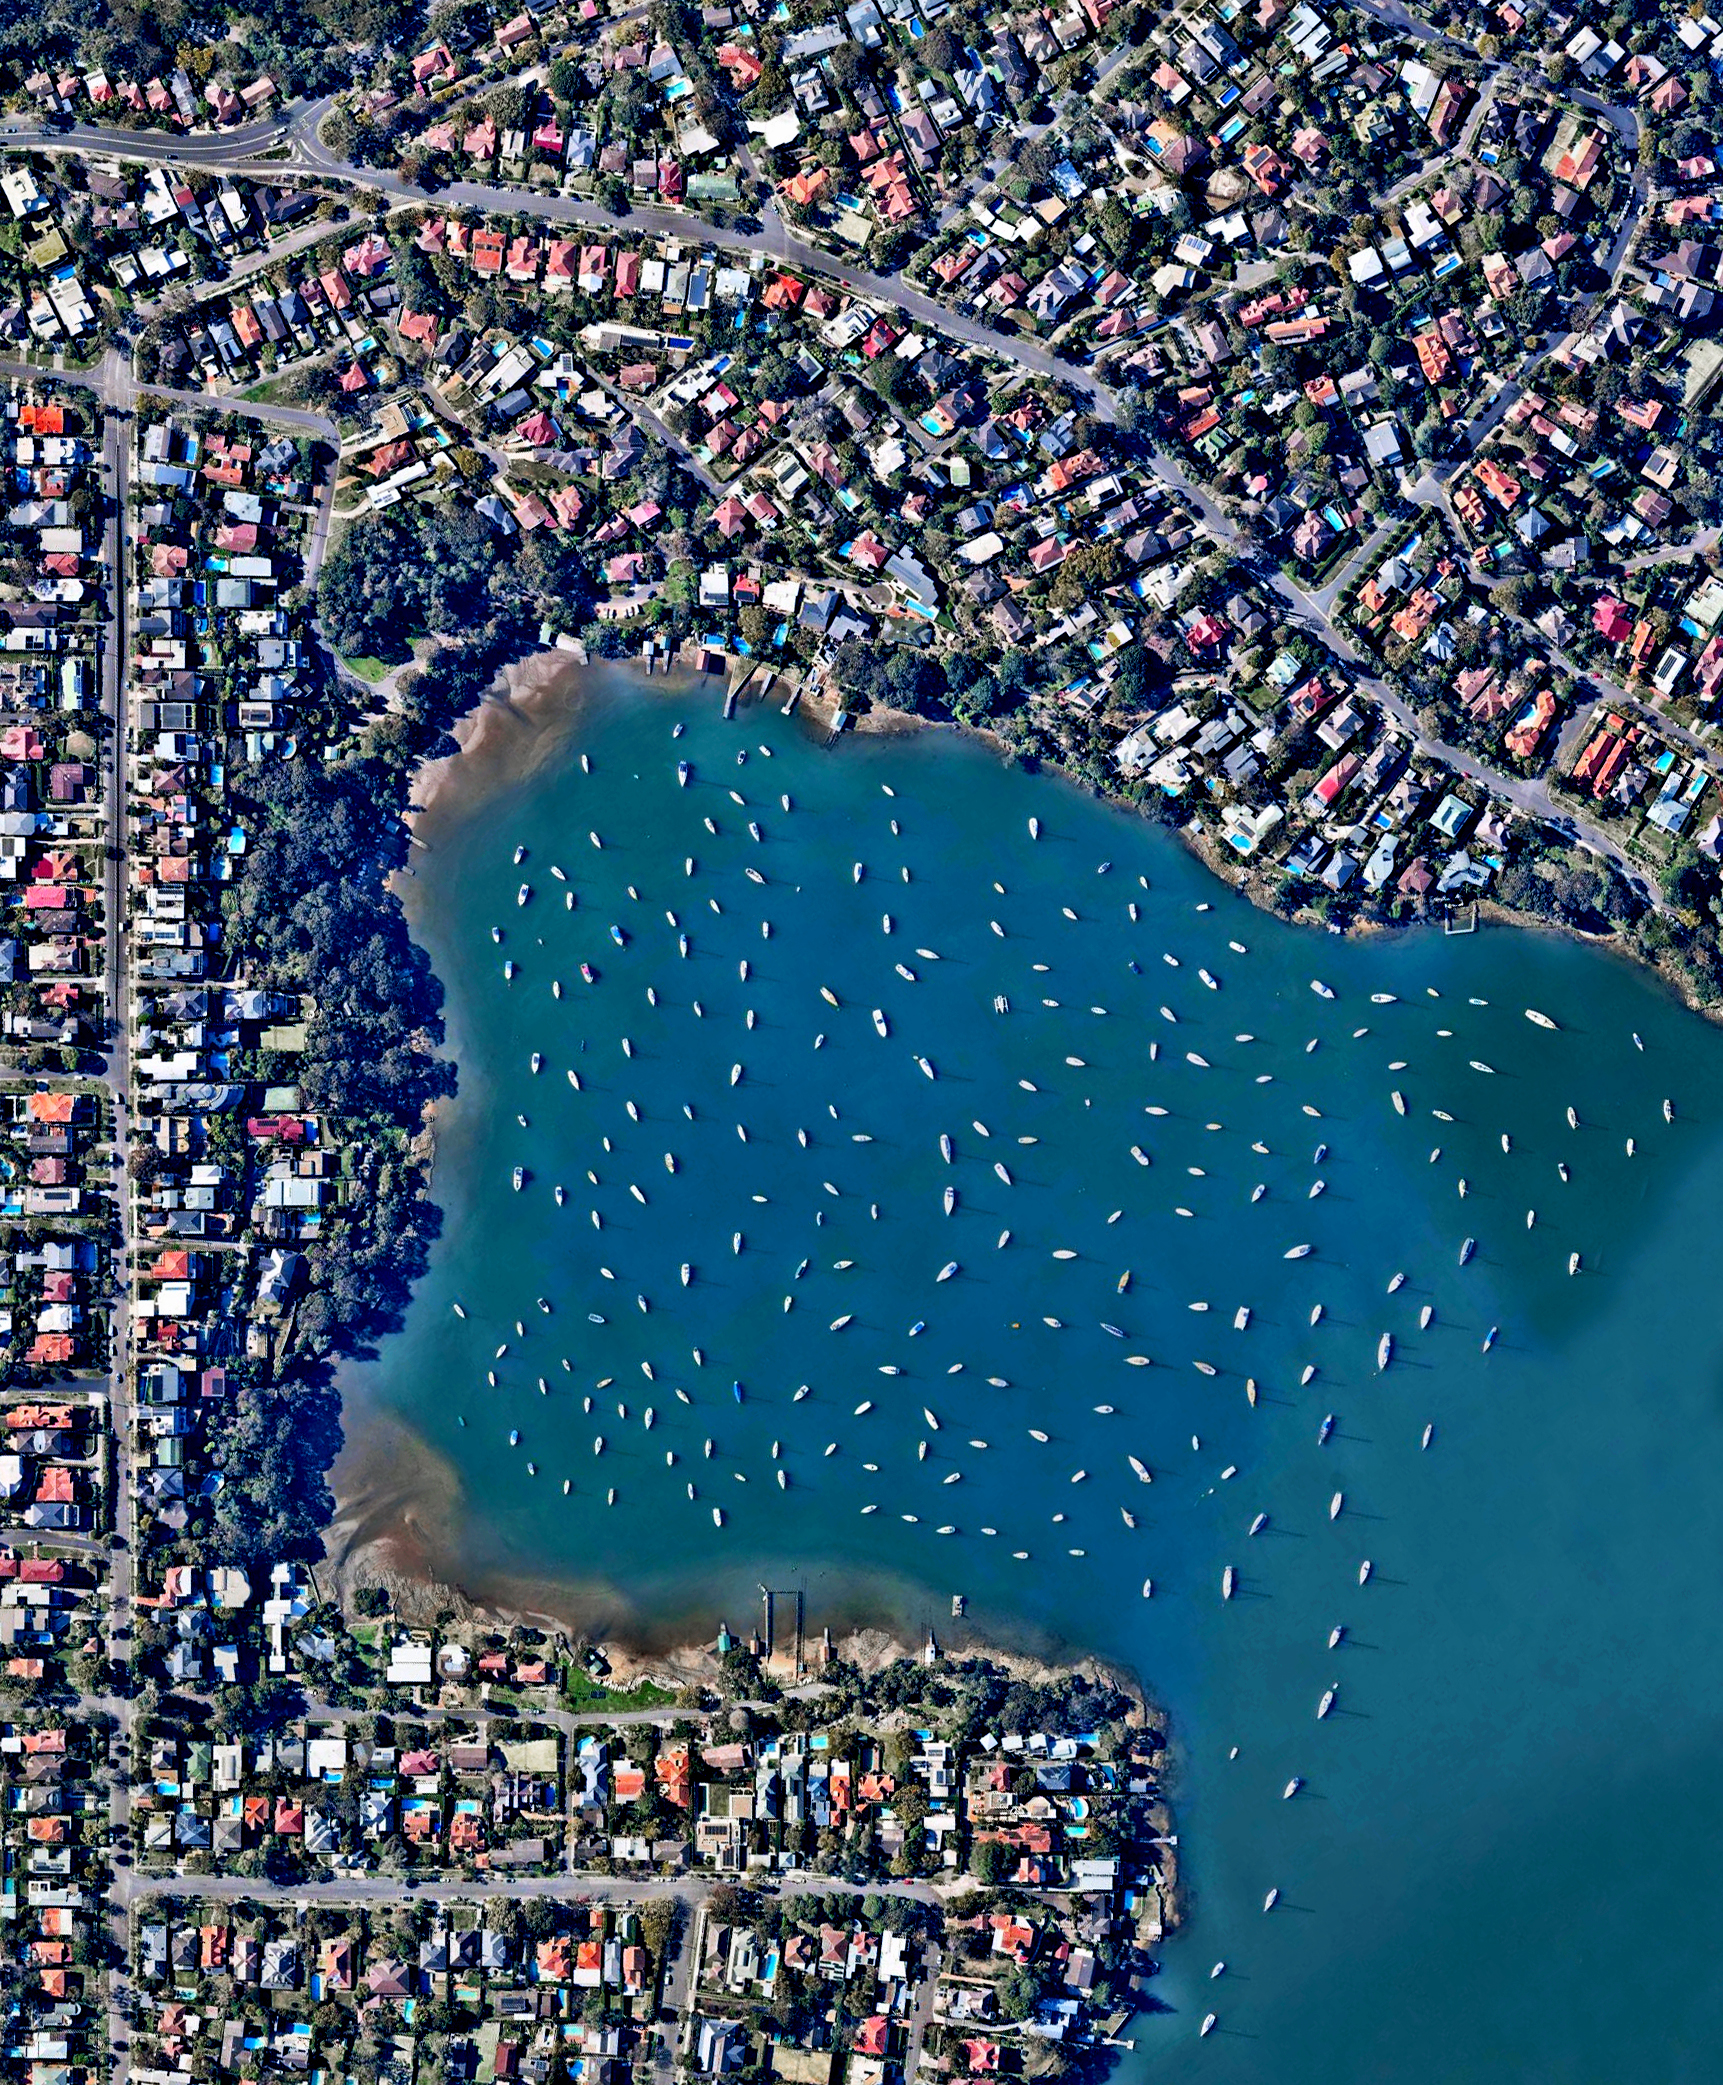 3/17/2017  Woodford Bay  New South Wales, Australia  -33.8298731,151.1739571    Sailboats are moored in Woodford Bay, New South Wales, Australia. Thousands of boats like the ones seen here are stationed in the channels and around the islands in the greater Sydney area. Wherever you are in the world, we hope you have a peaceful, fantastic weekend!